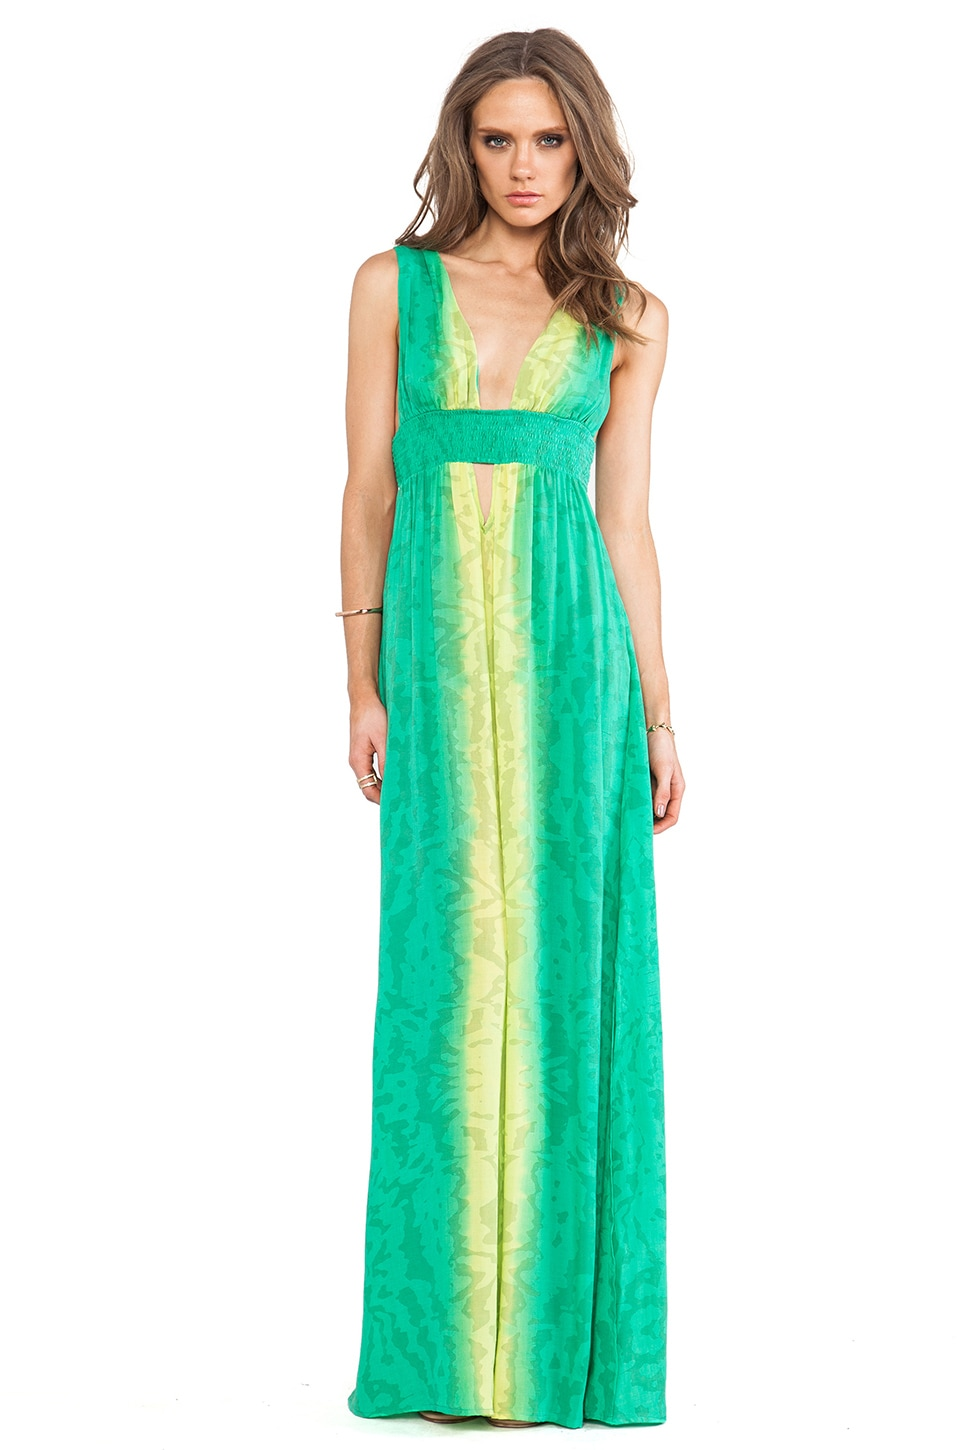 Indah Anjeli Plunge Empire Maxi Dress in Ink Fade Aqua